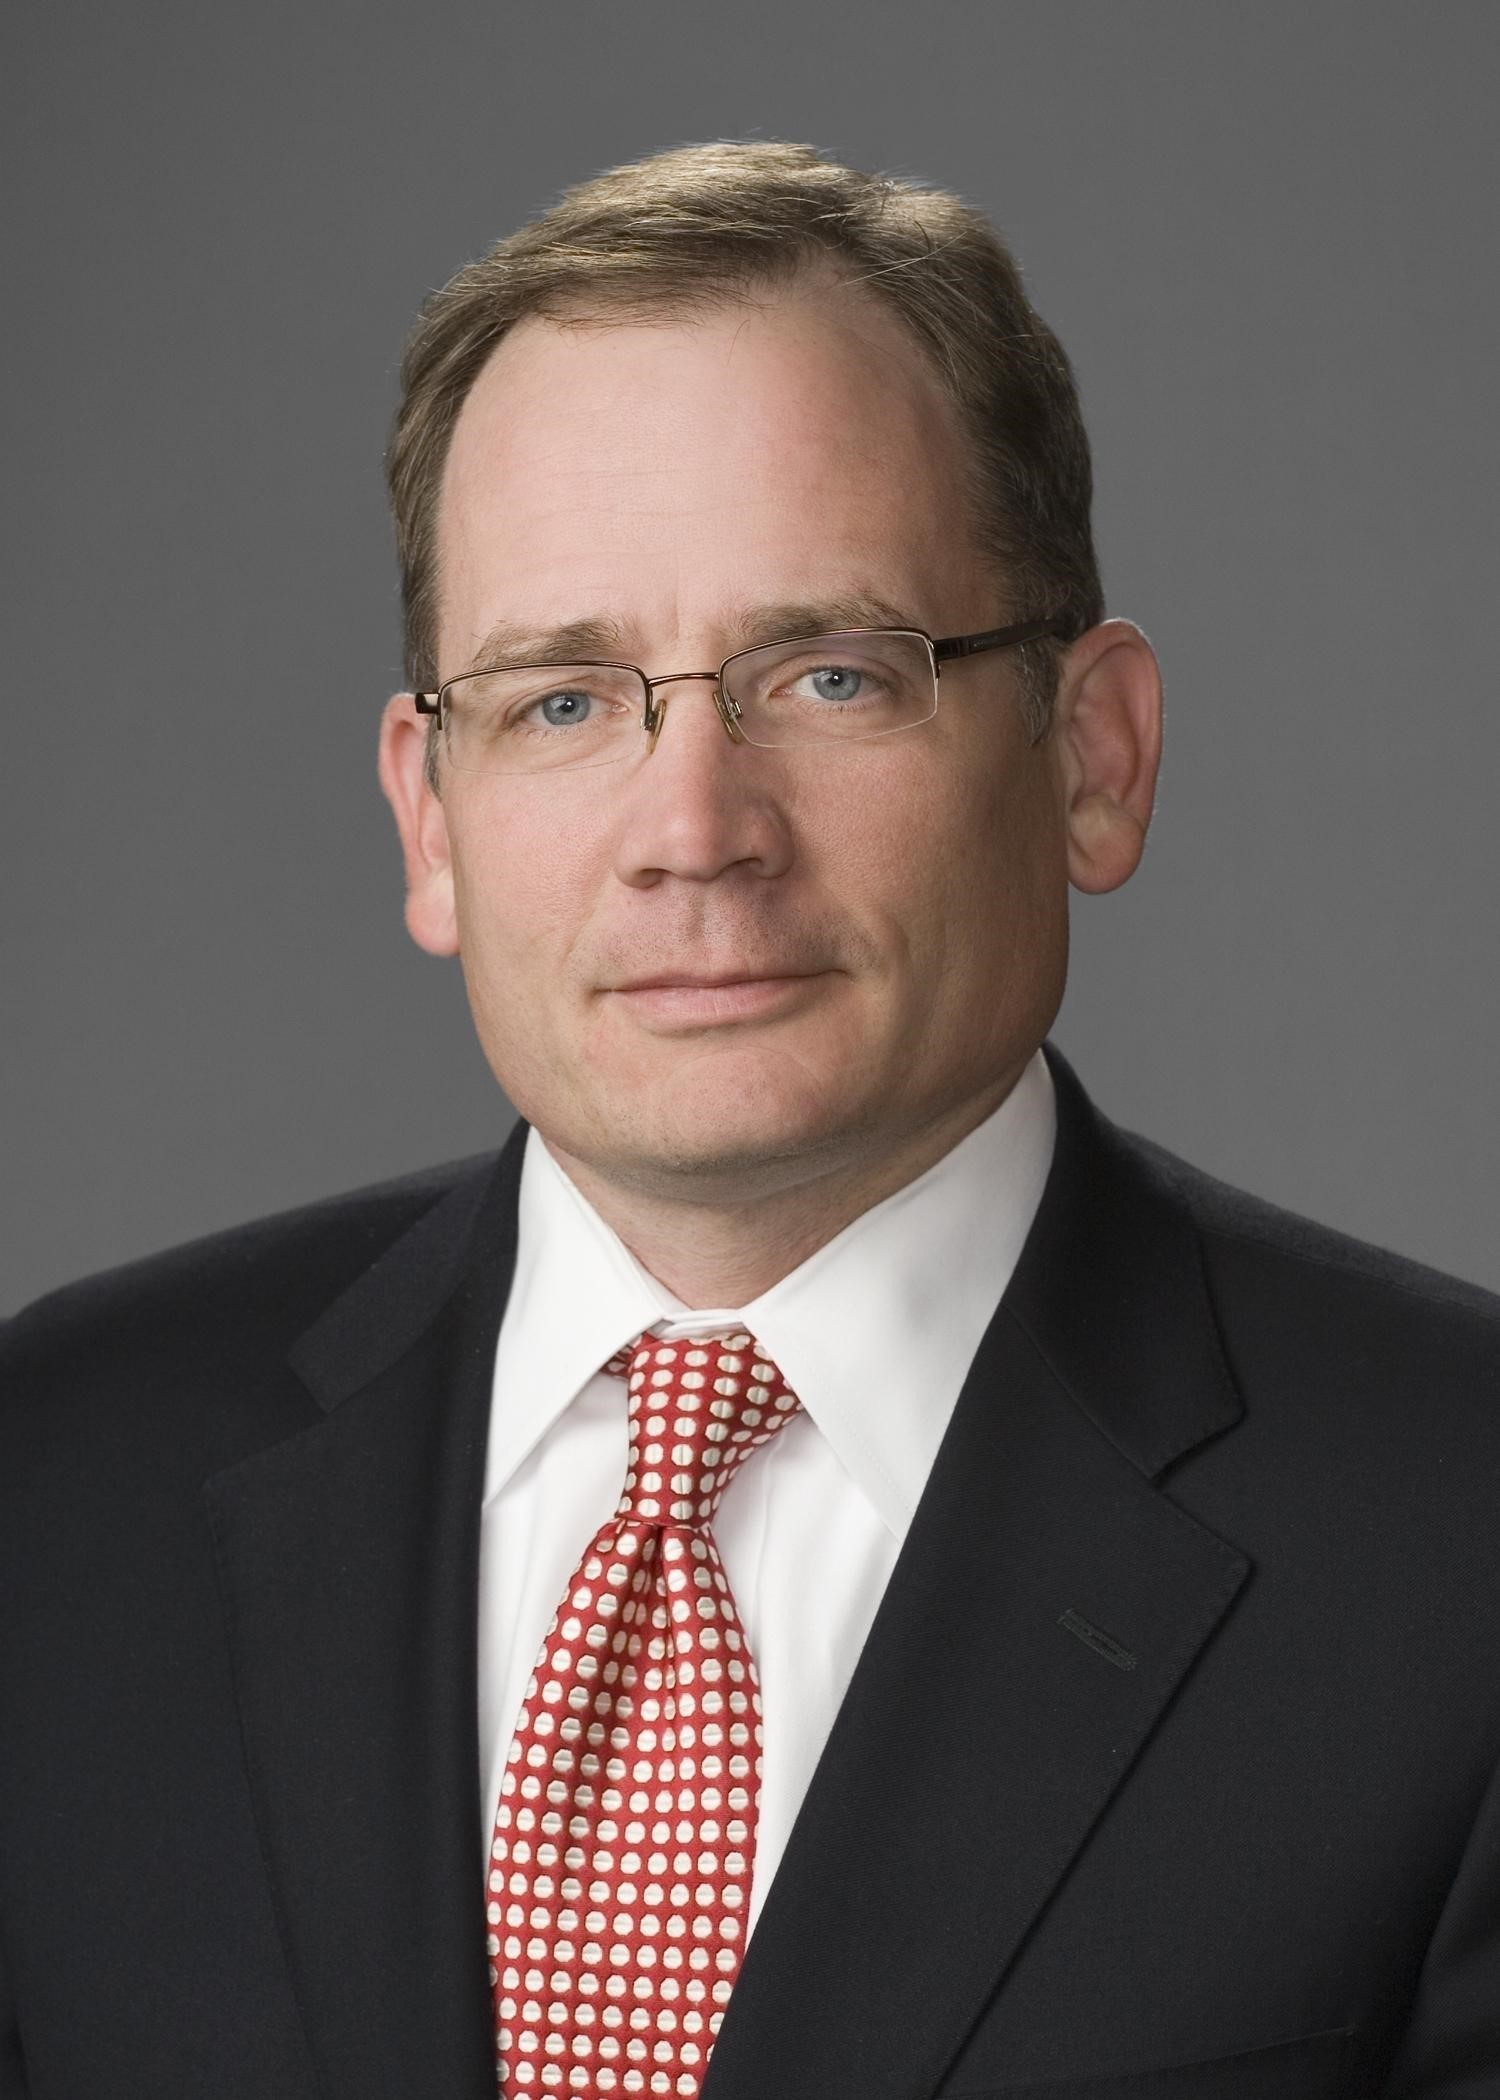 Speaker: Sean Wheeler, Partner at Latham & Watkins Houston's Office